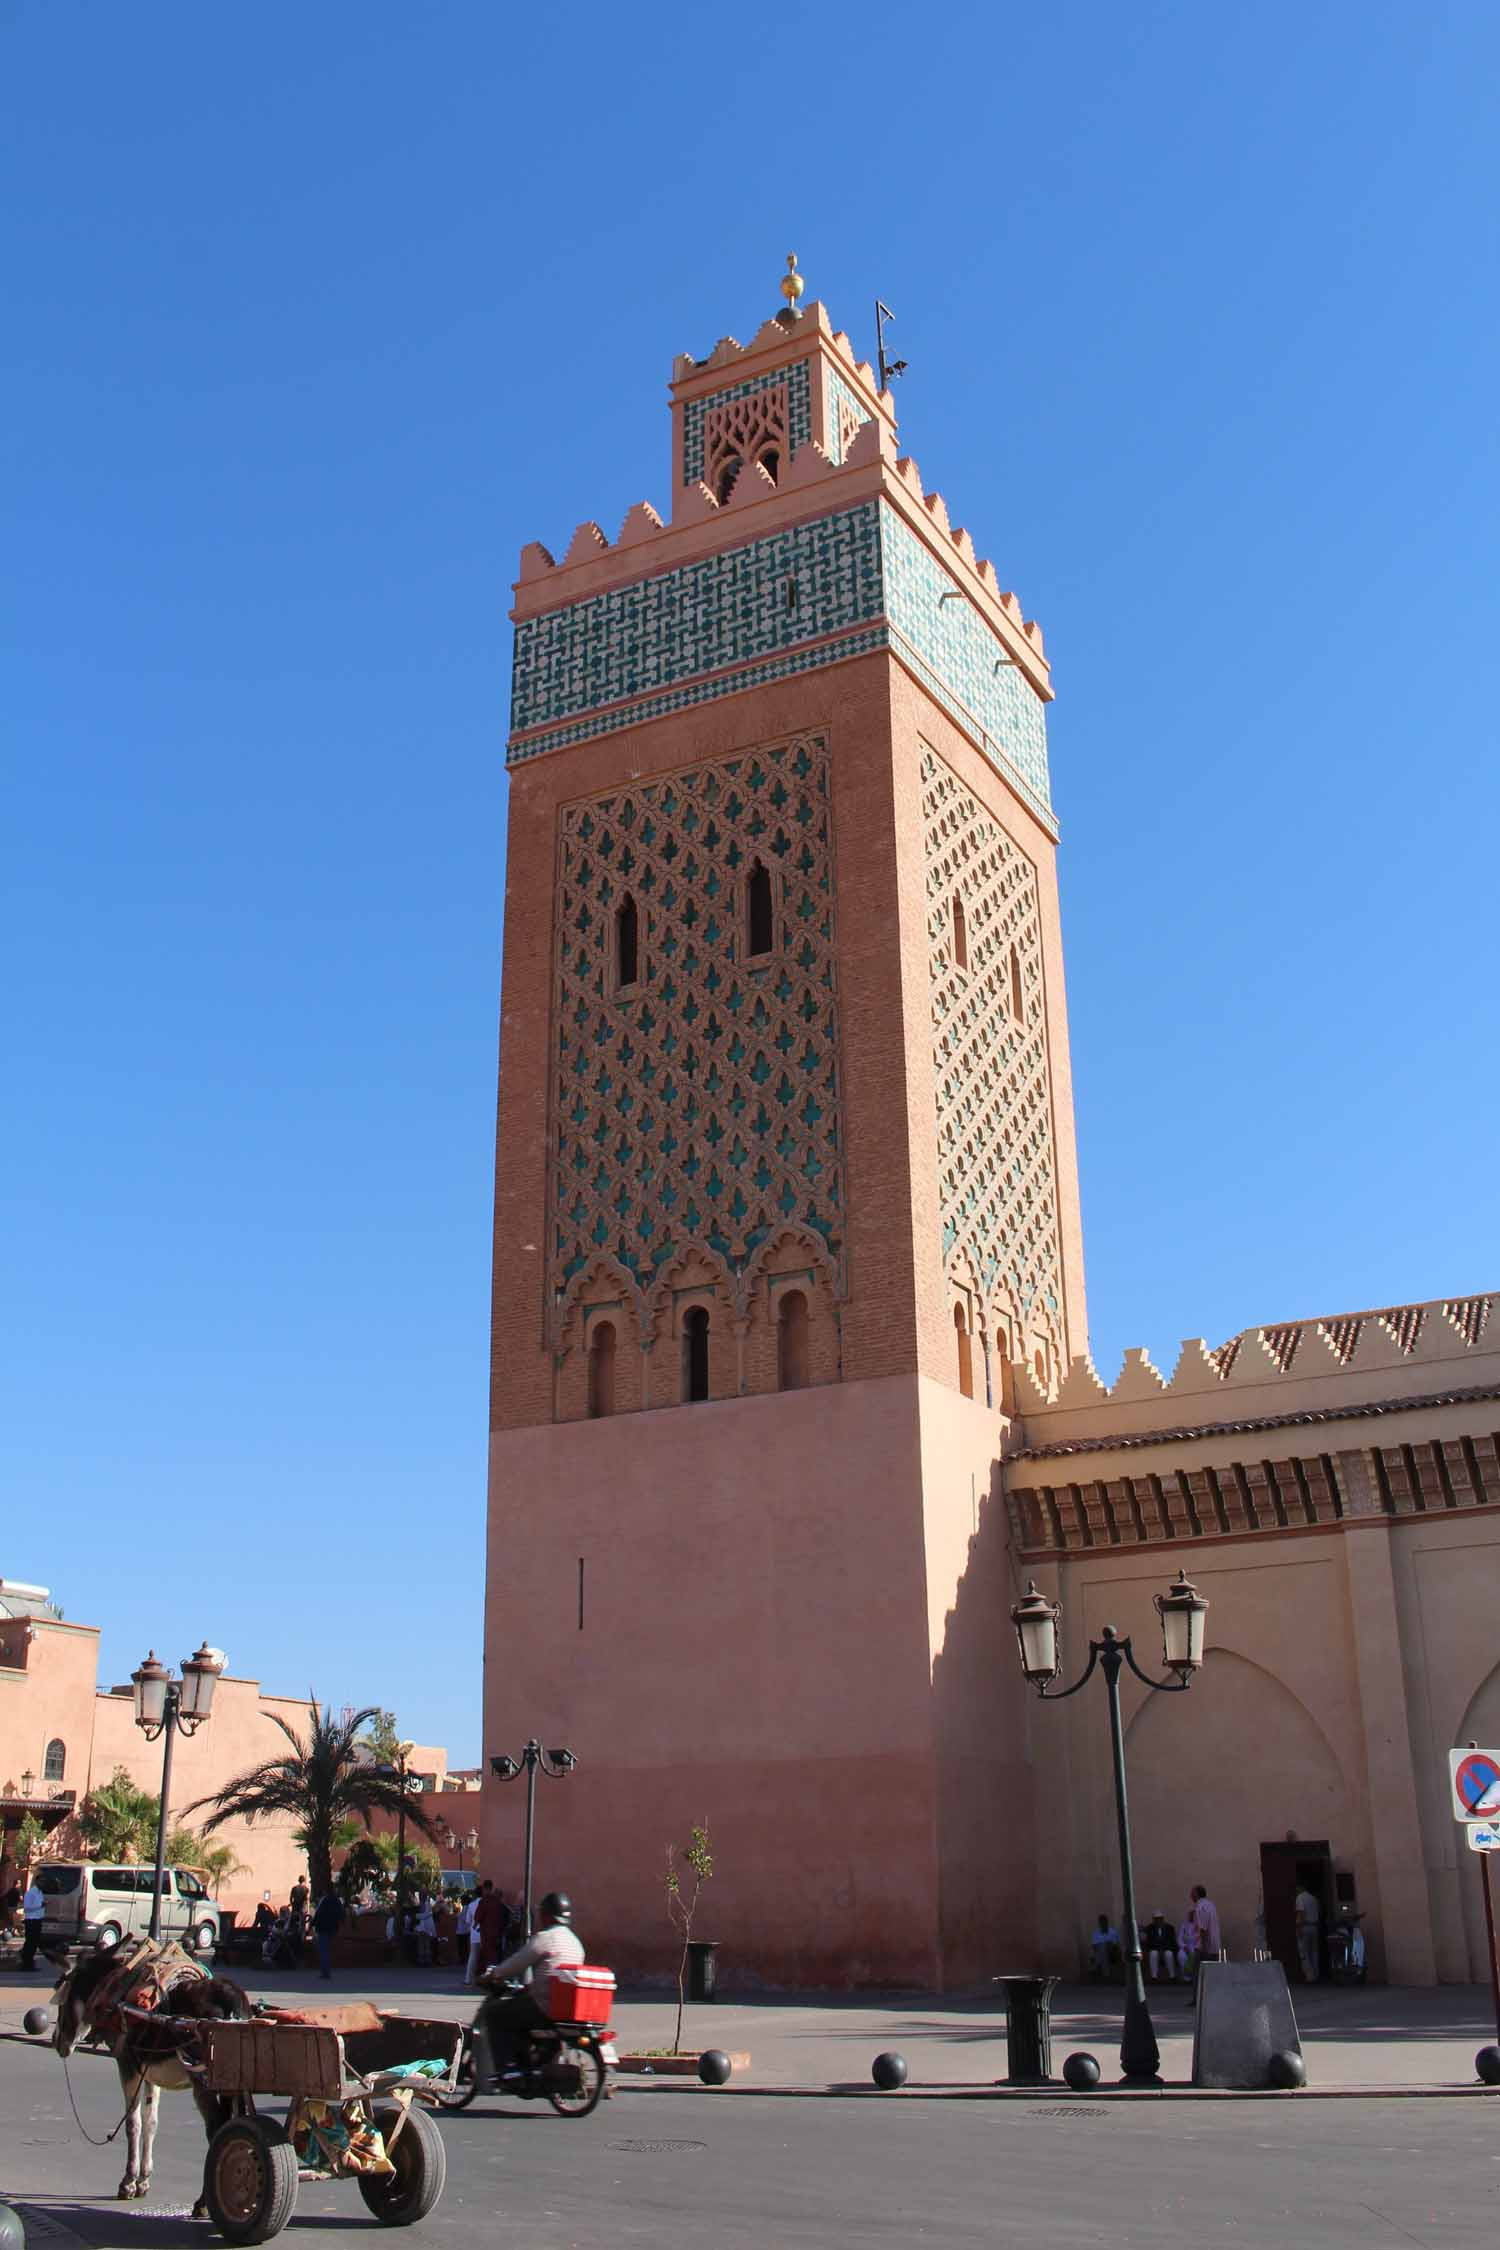 Marrakesh, Moulay el Yazid mosque, minaret